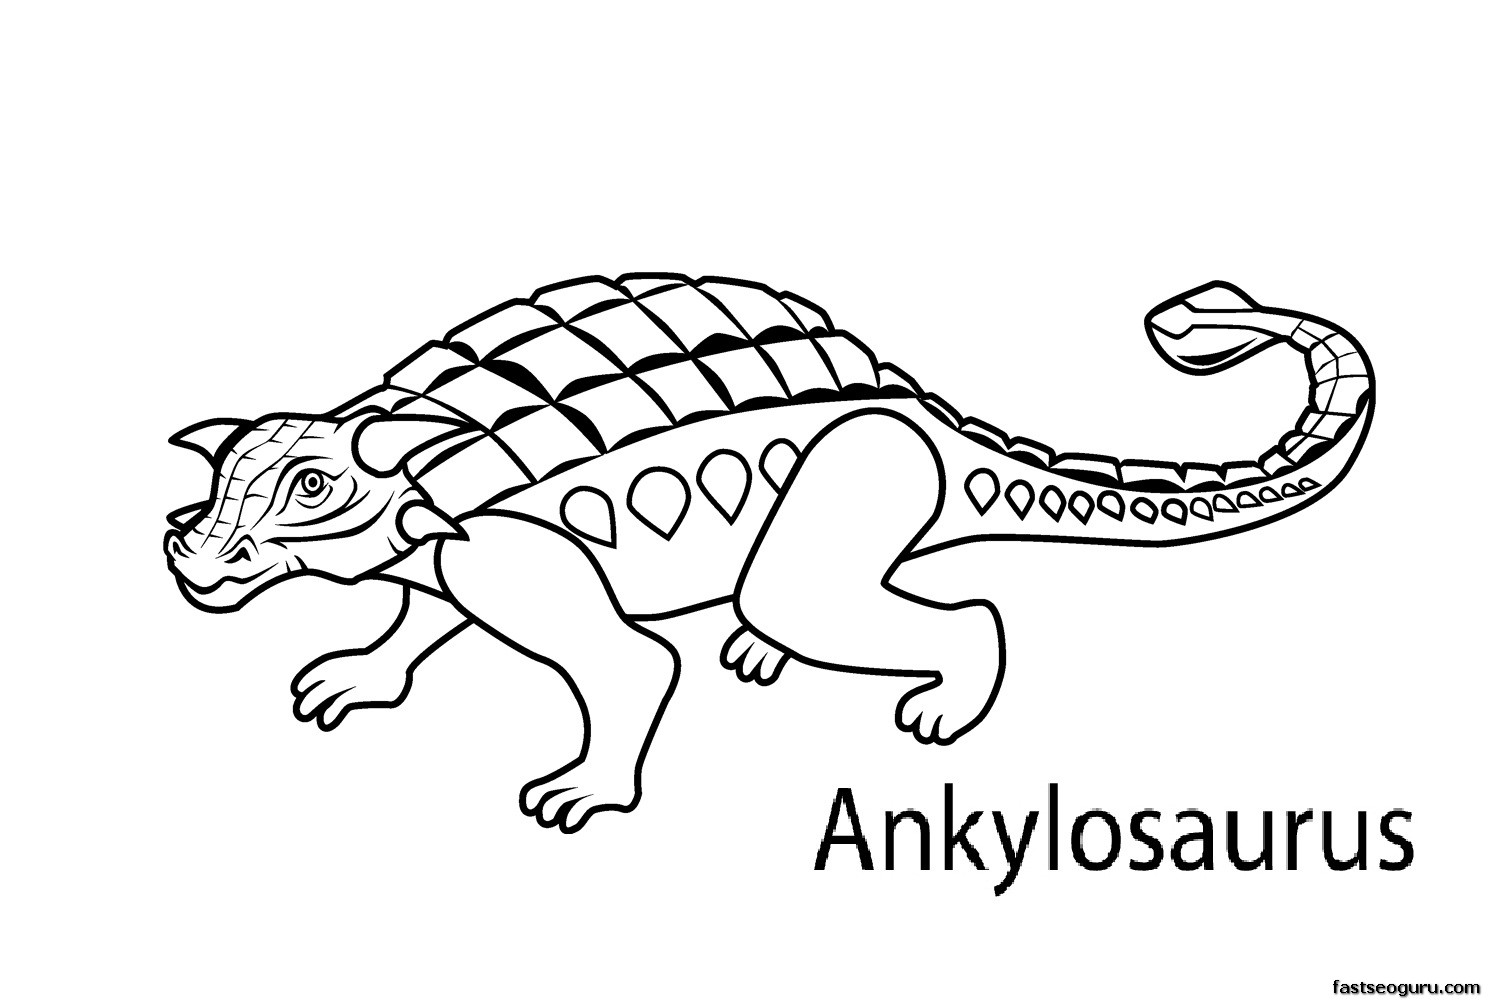 Dinosaur coloring pages to print out - Colouring Sheets Dinosaurs Printable Printable Dinosaur Coloring Pages Simonschoolblogcom Dinosaurs 15